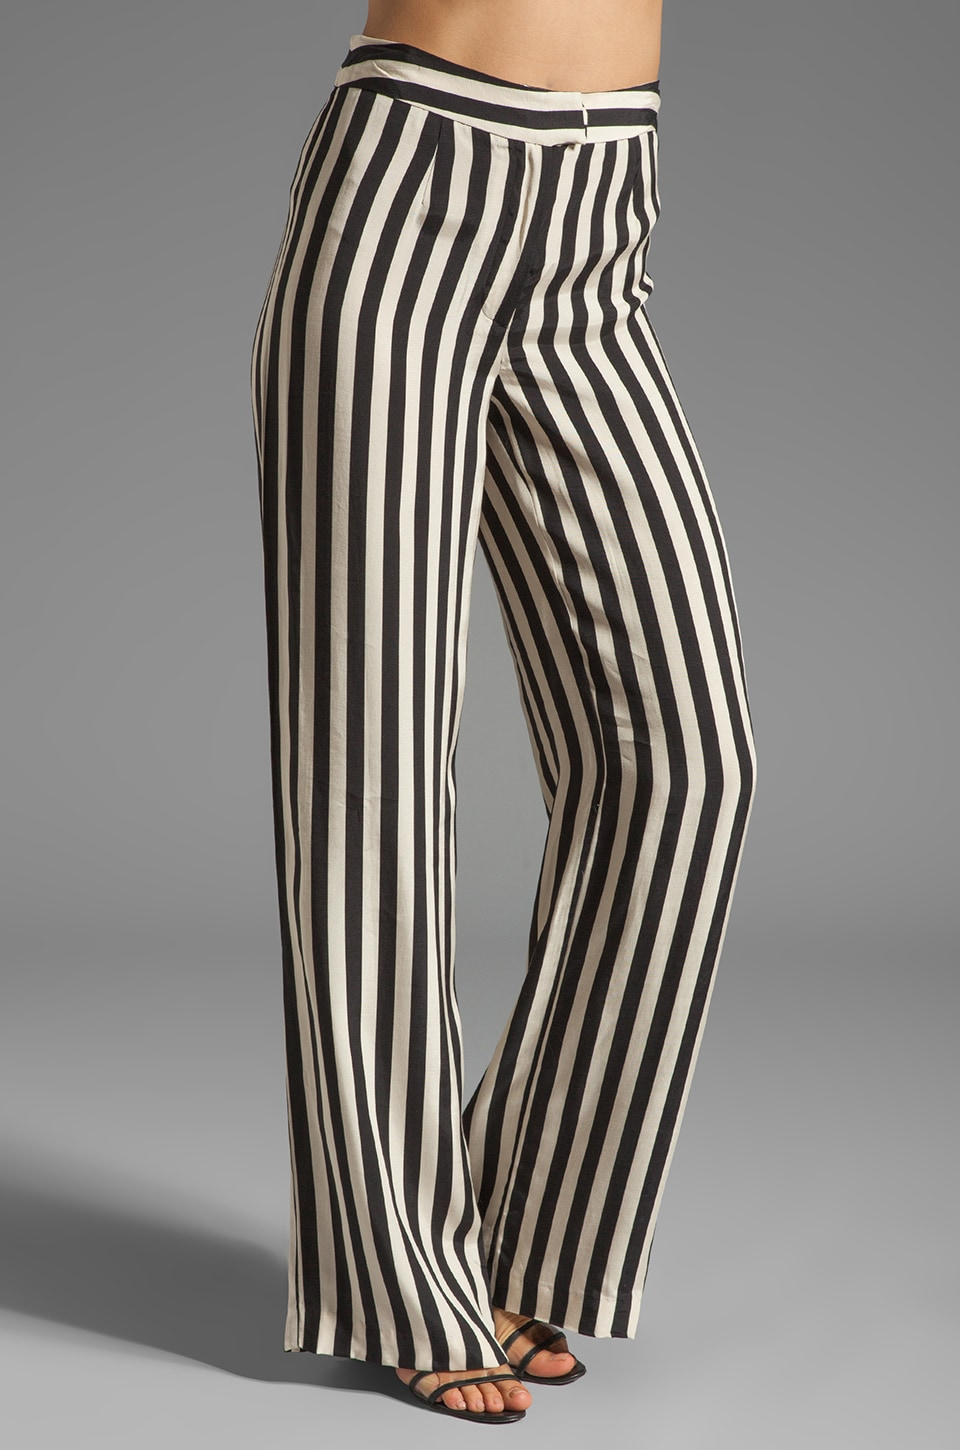 American Retro Peny Pants in Stripe